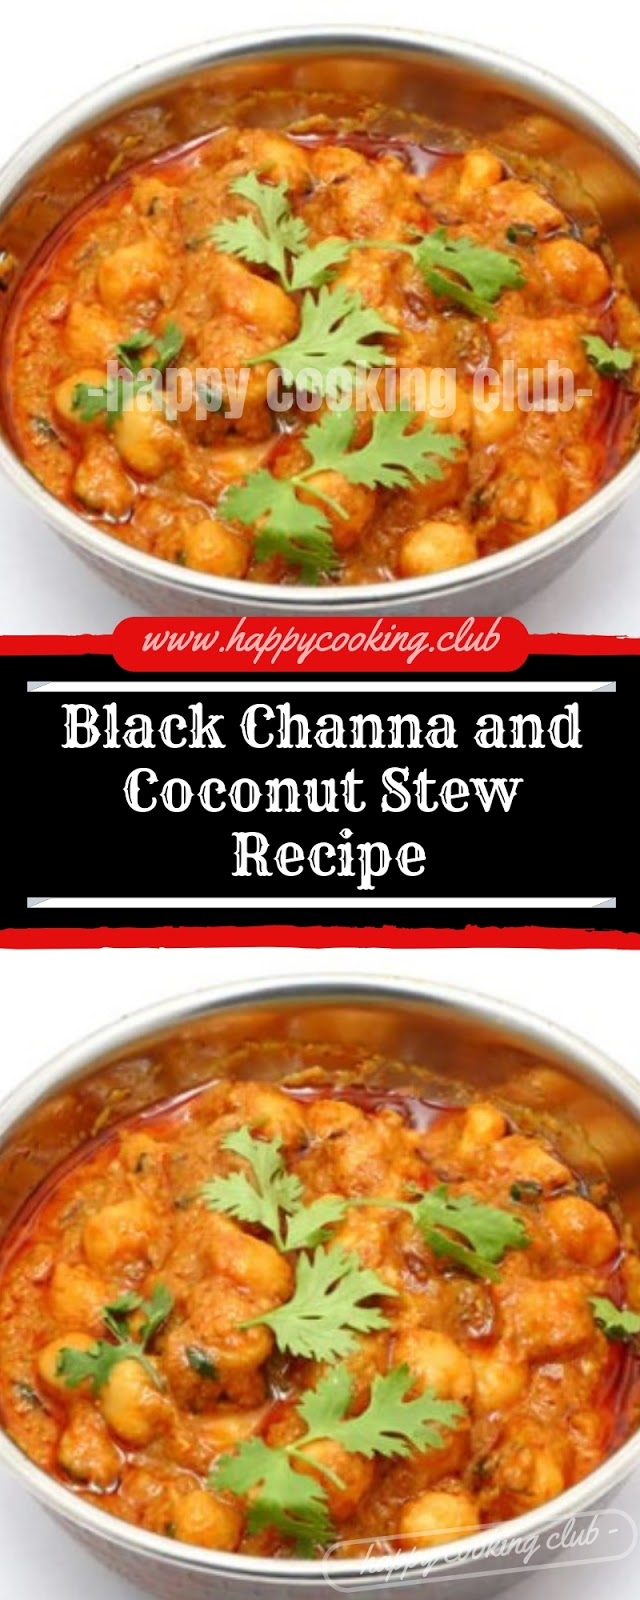 Black Channa and Coconut Stew Recipe